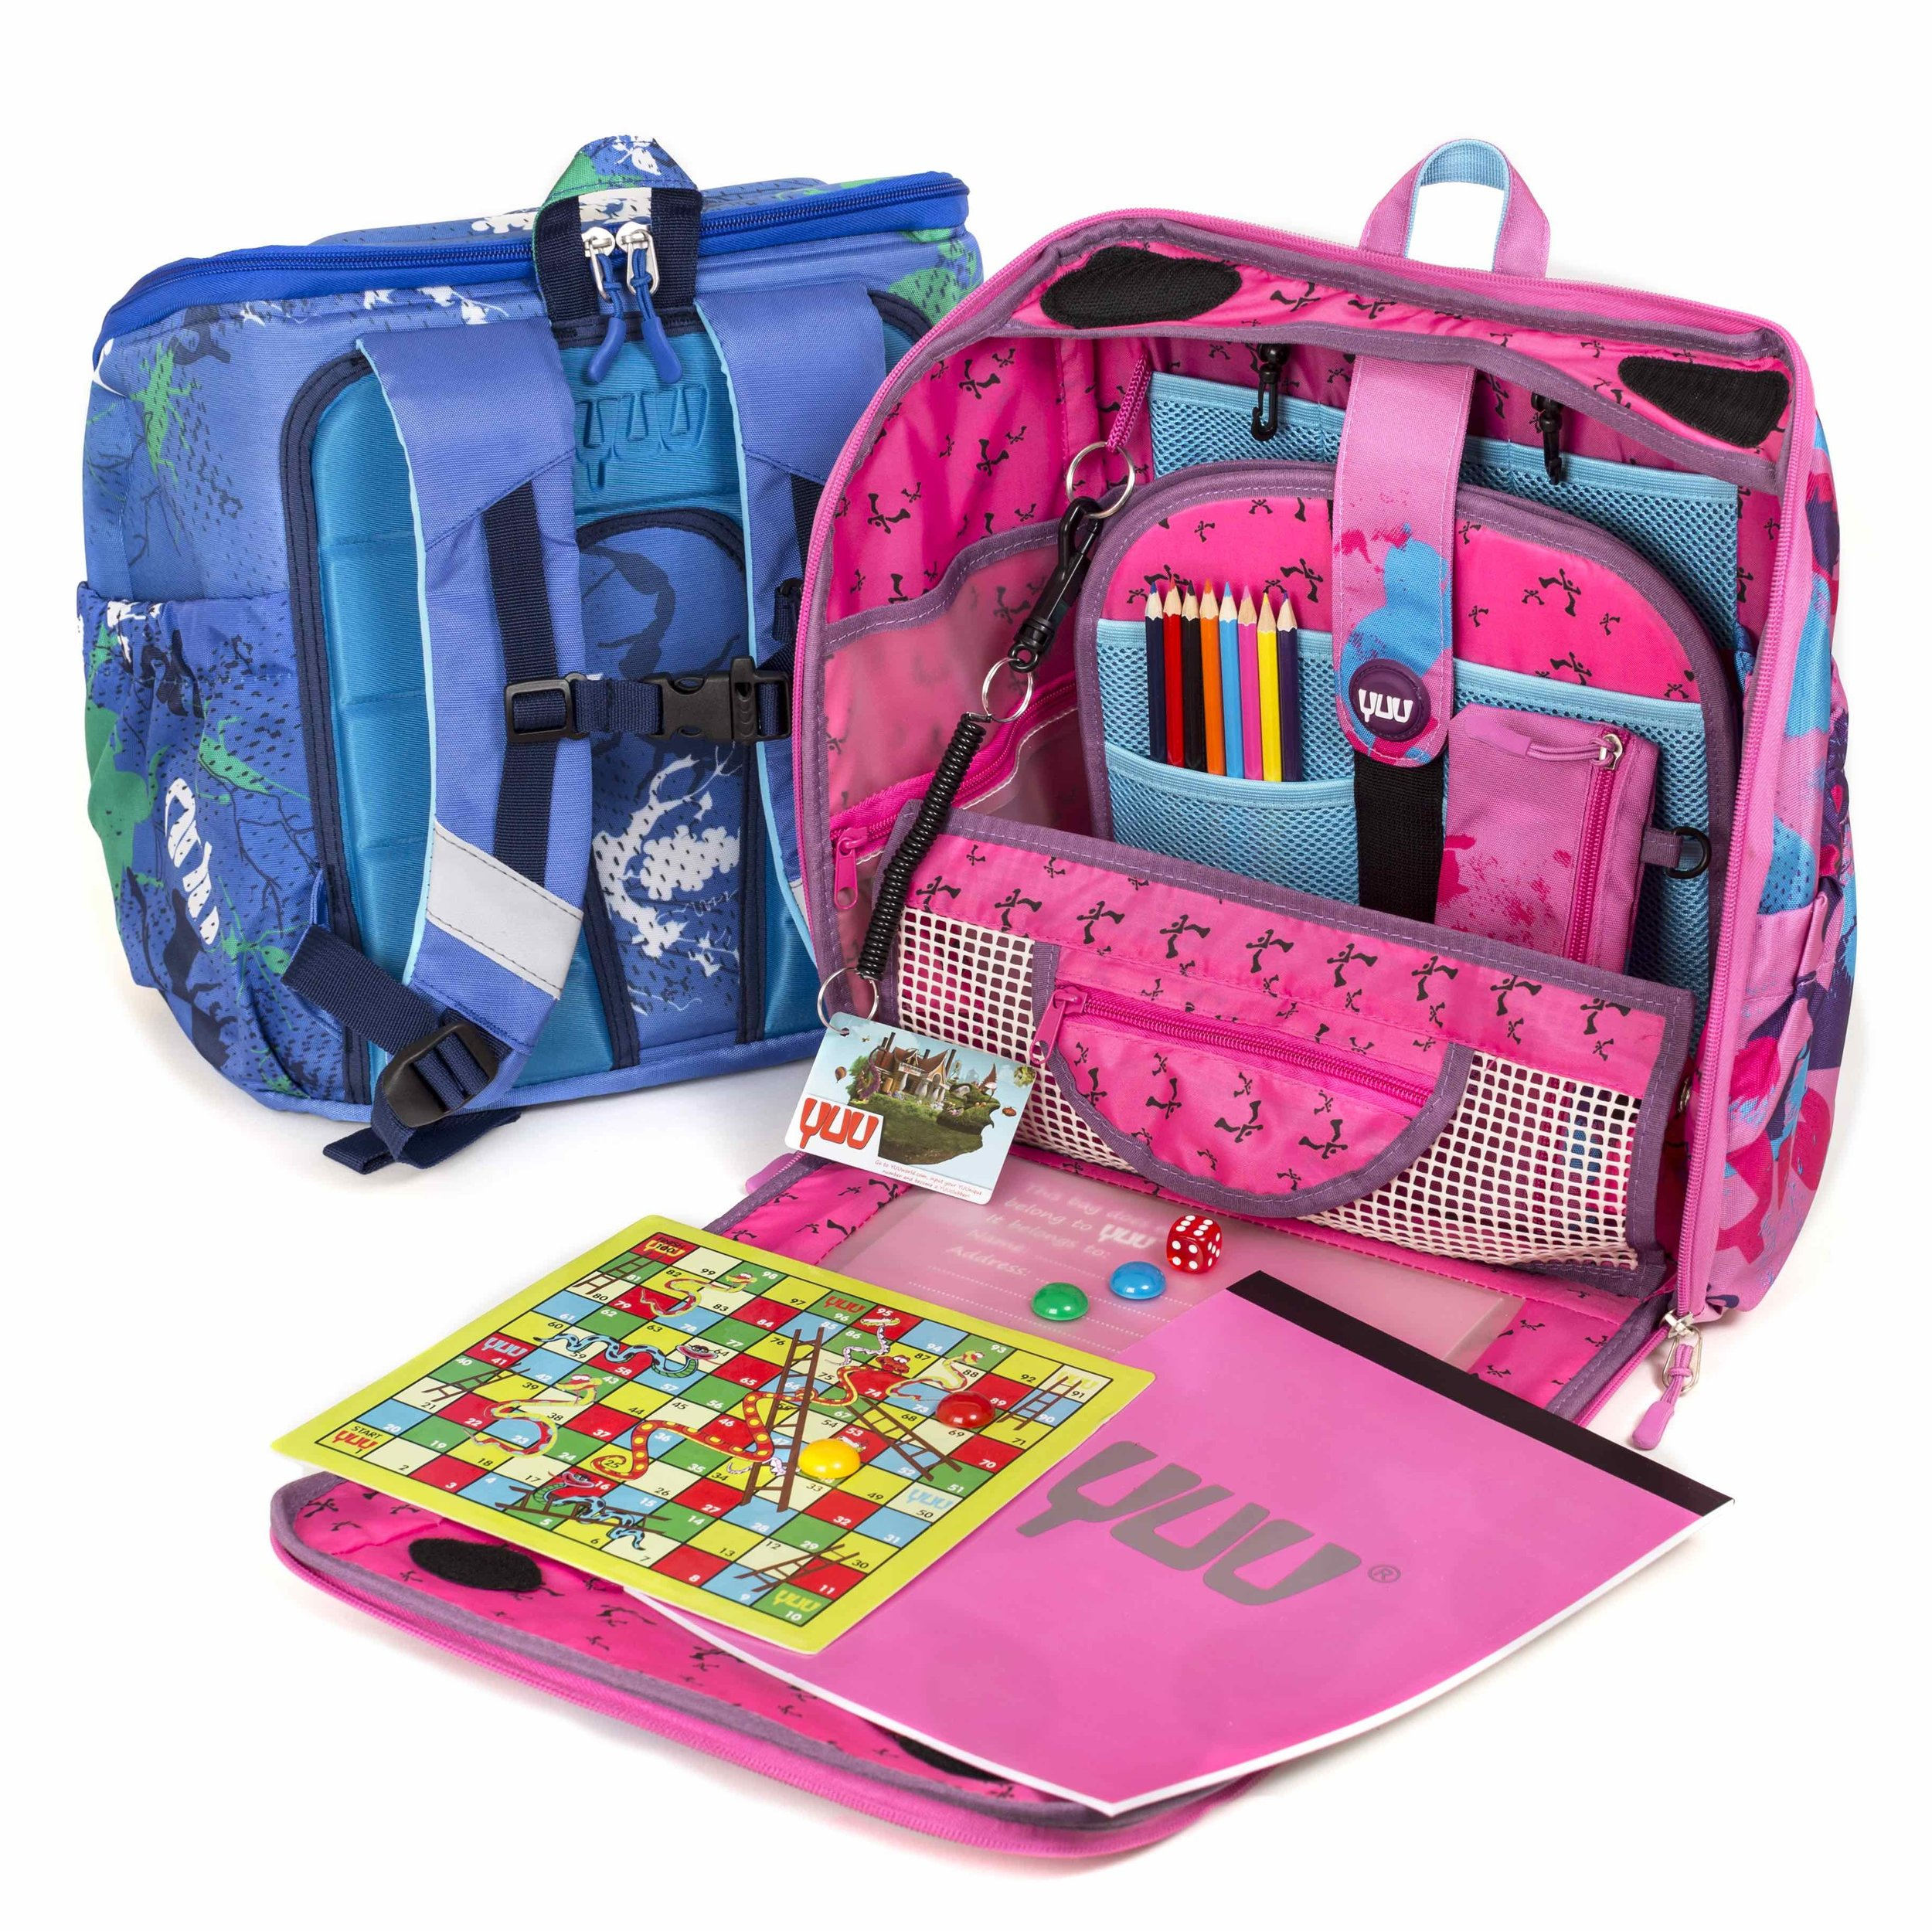 Yuu Bag - £55.00   A world away from a regular backpack, the YUUbag cleverly combines a portable entertainment station with a durable, premium quality backpack with pockets galore for all your kid's kit and caboodle. With a YUUbag you can take the fun wherever you go!